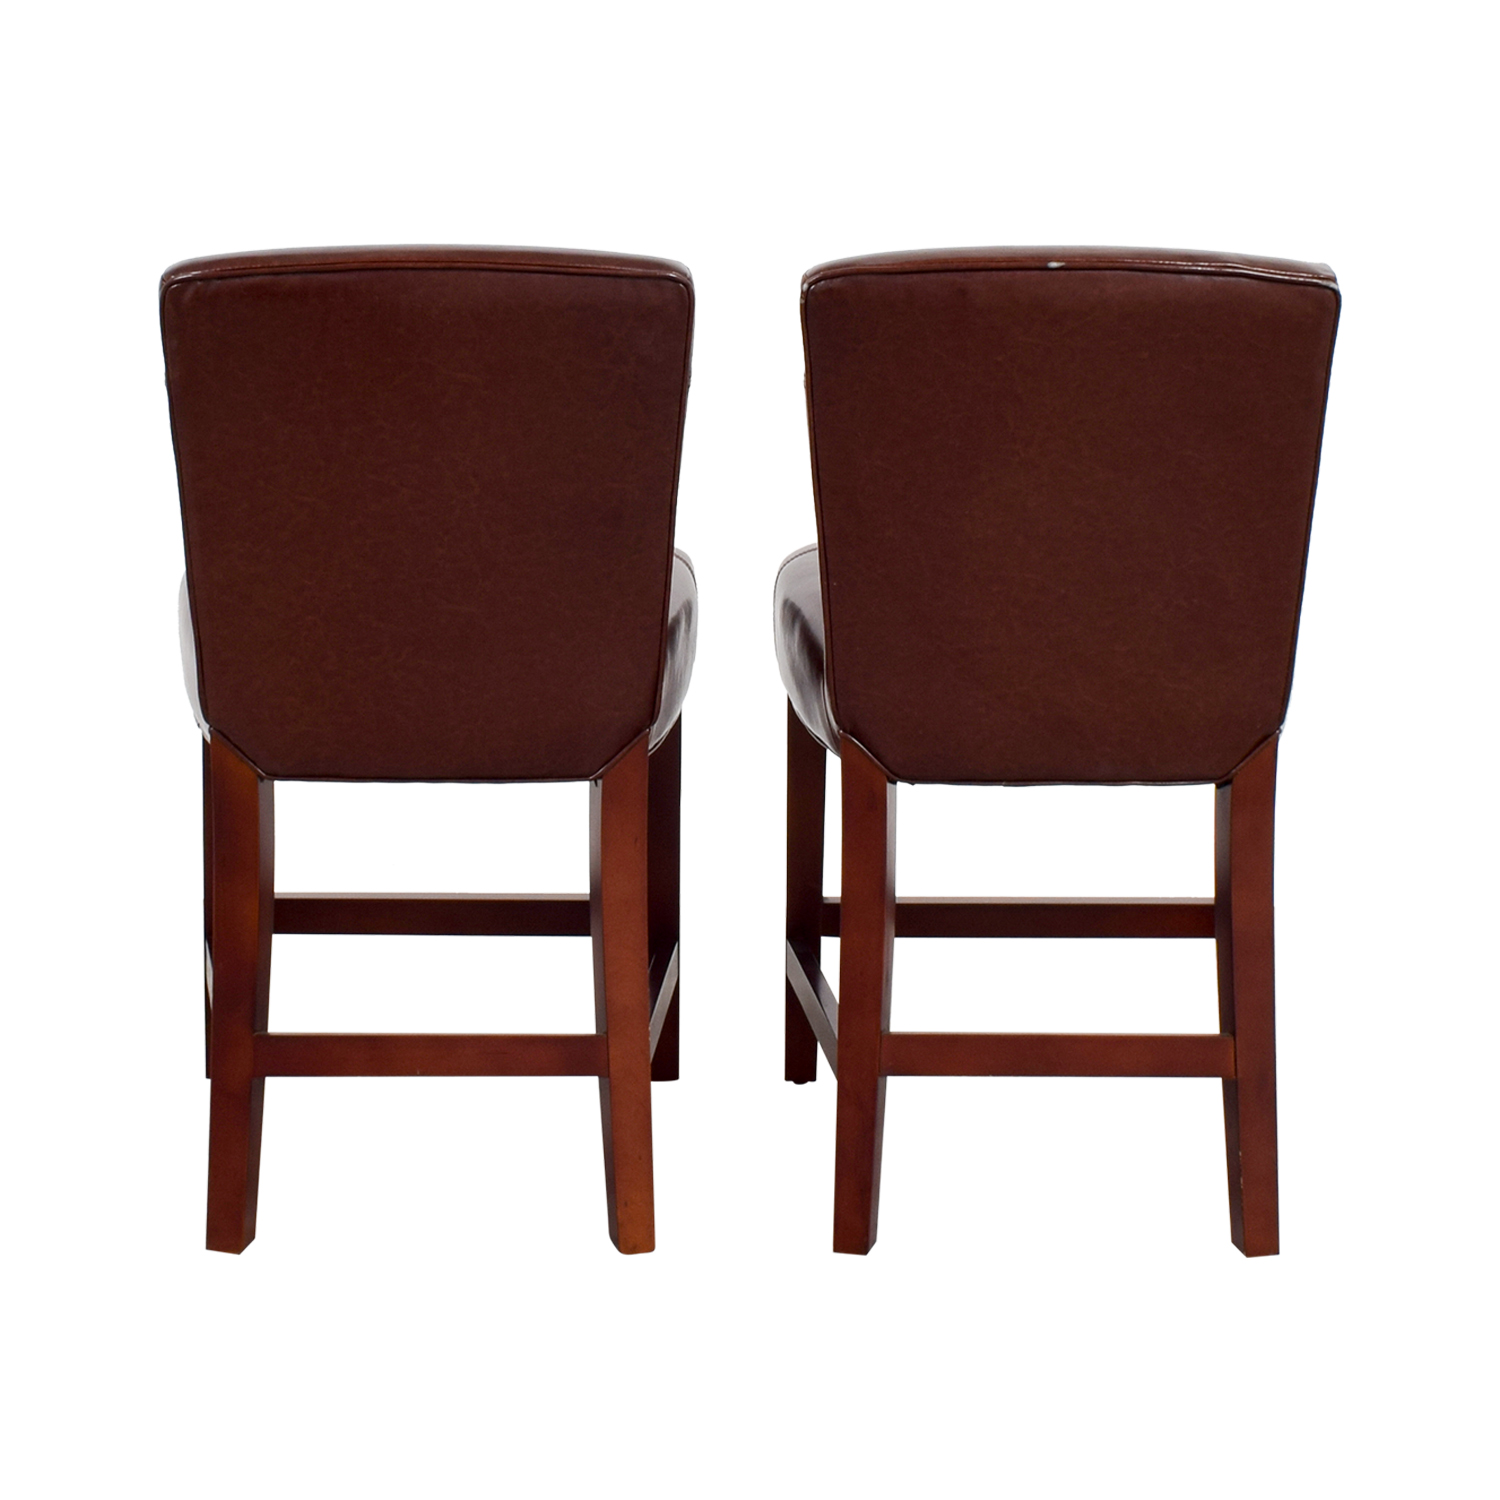 buy Crate & Barrel Brown Leather Bar Stools Crate & Barrel Chairs